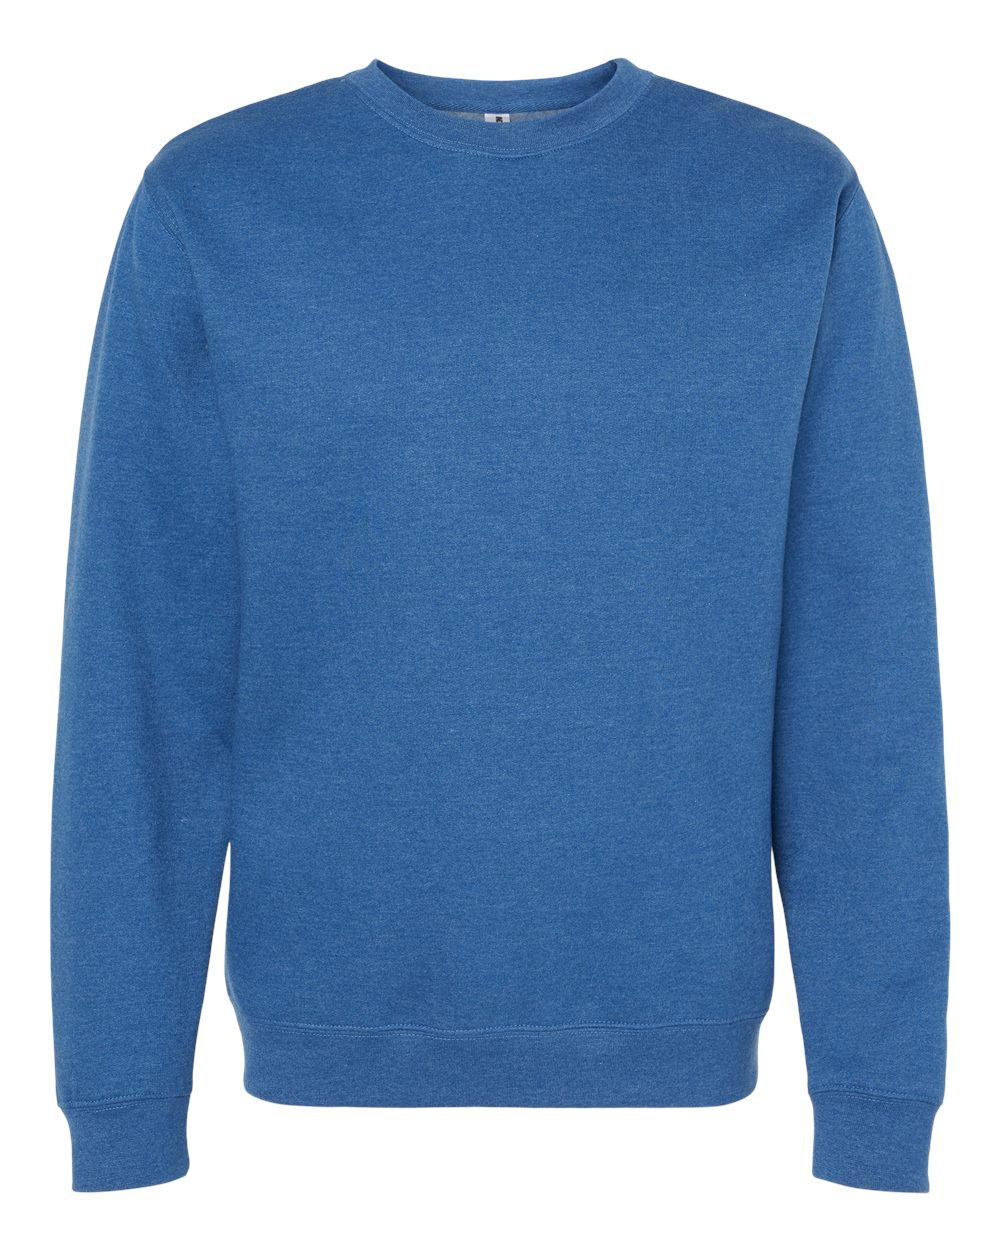 Independent-Trading-Co-Midweight-Crewneck-Sweatshirt-SS3000-up-to-3XL miniature 33